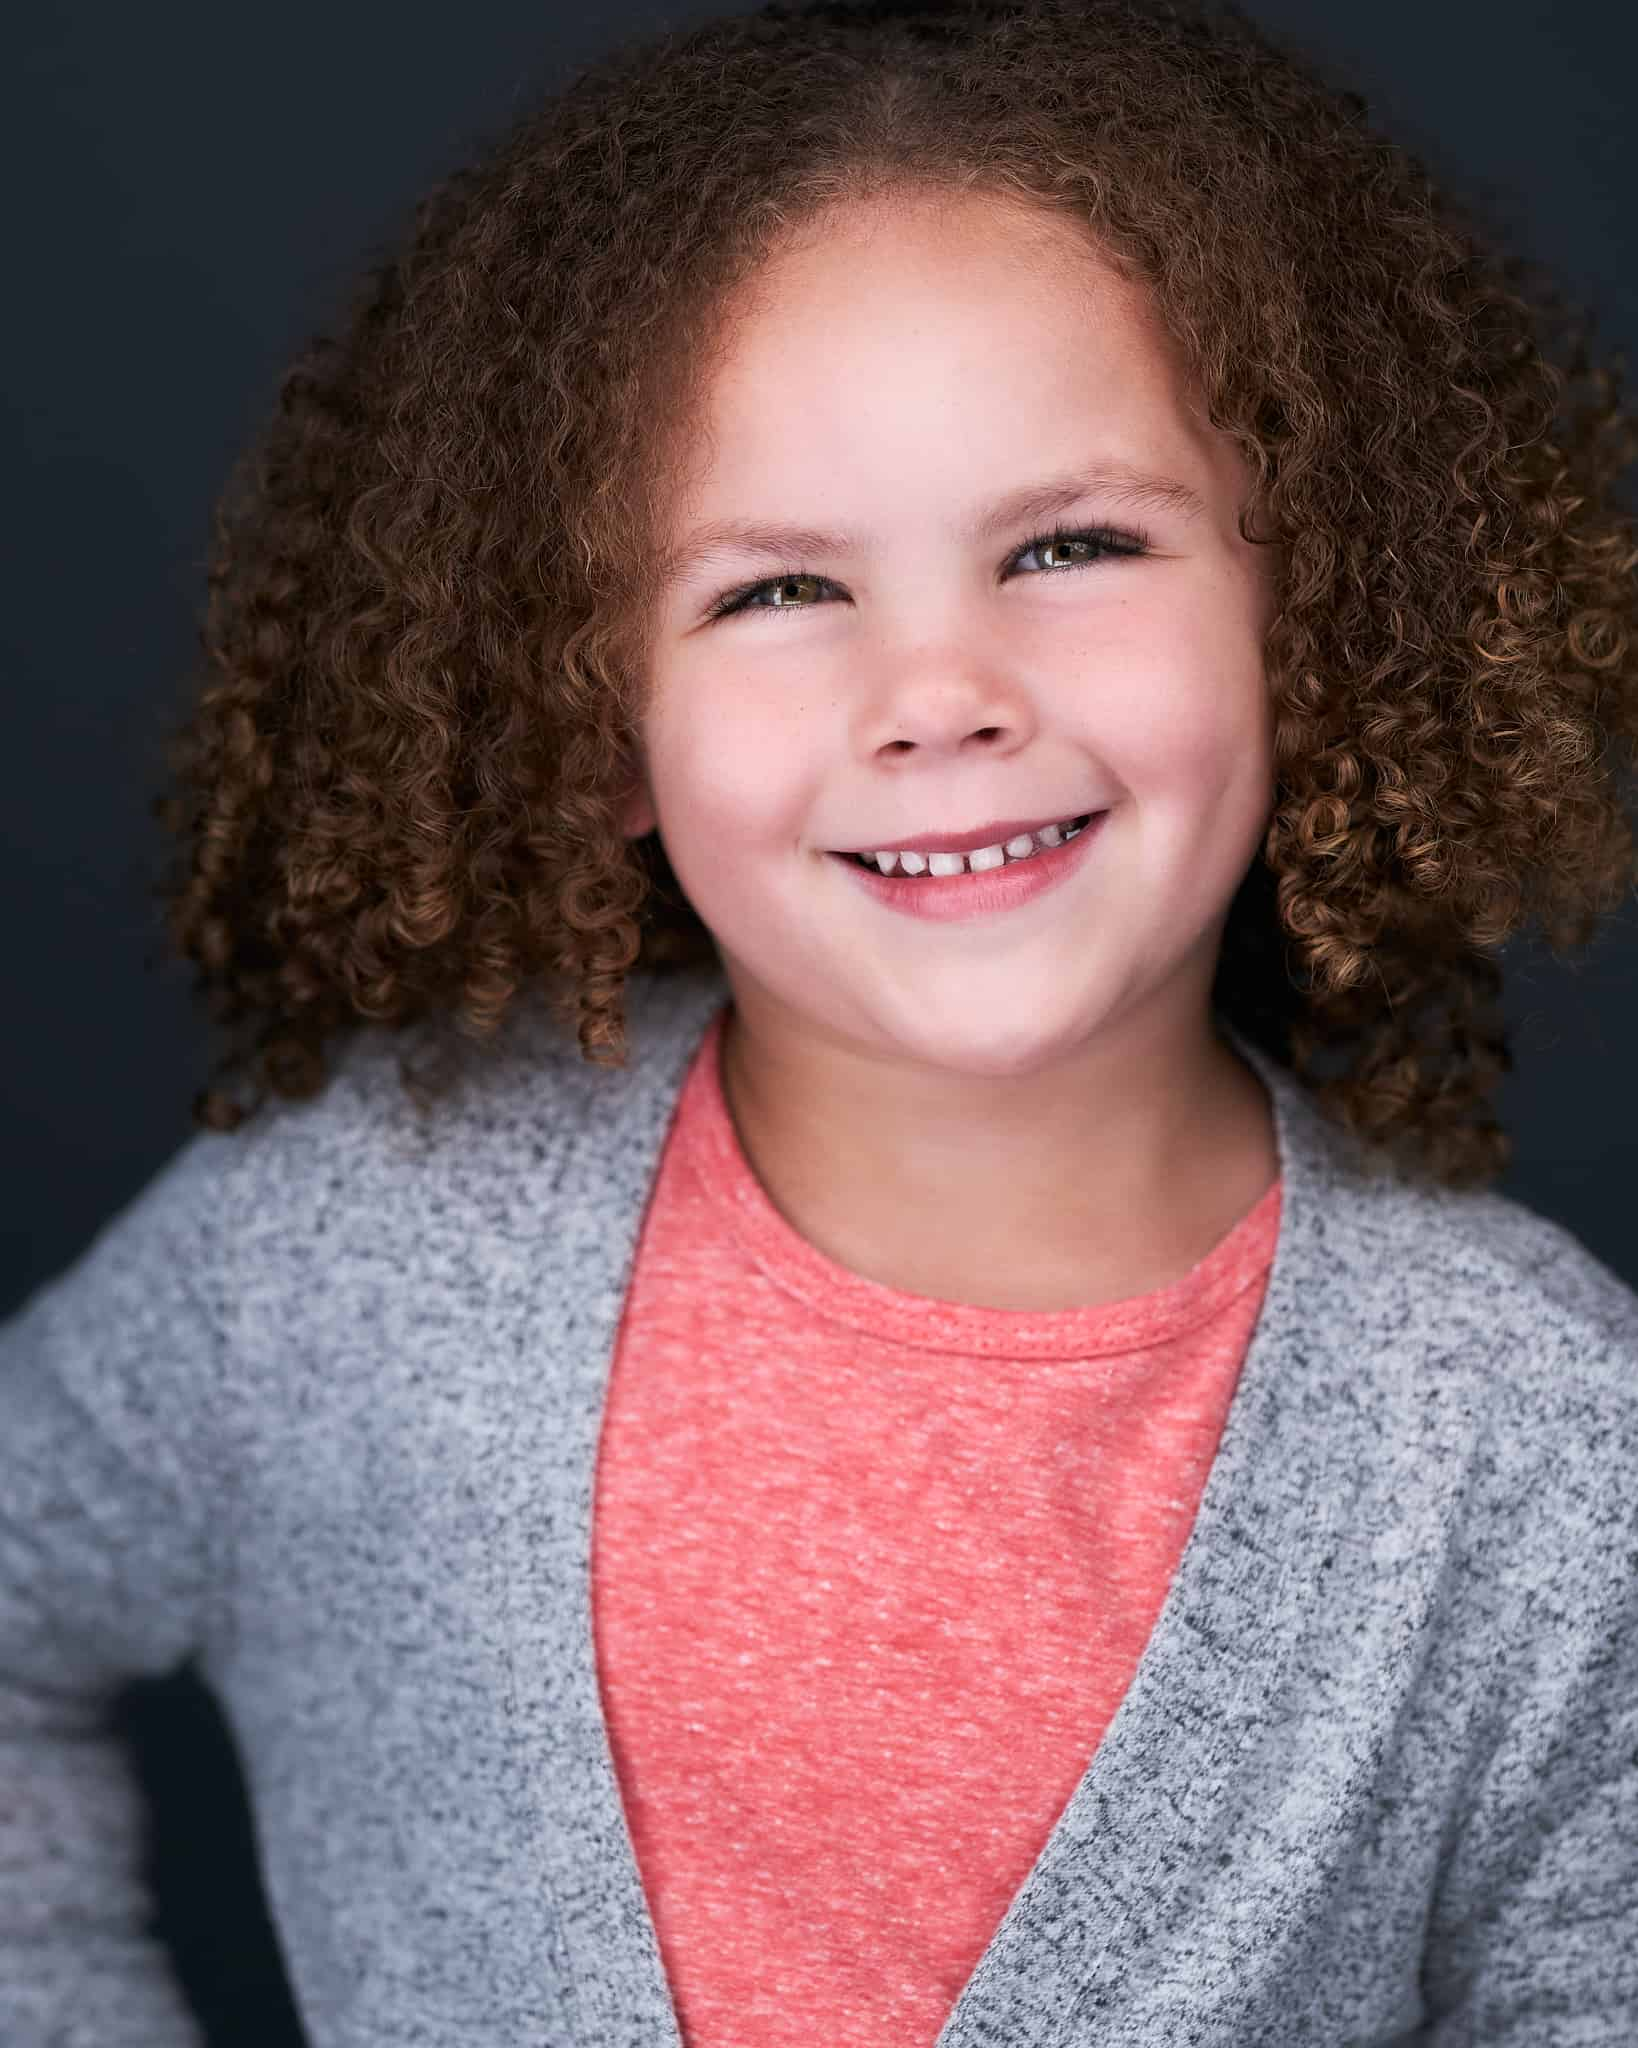 Child Actor Headshot